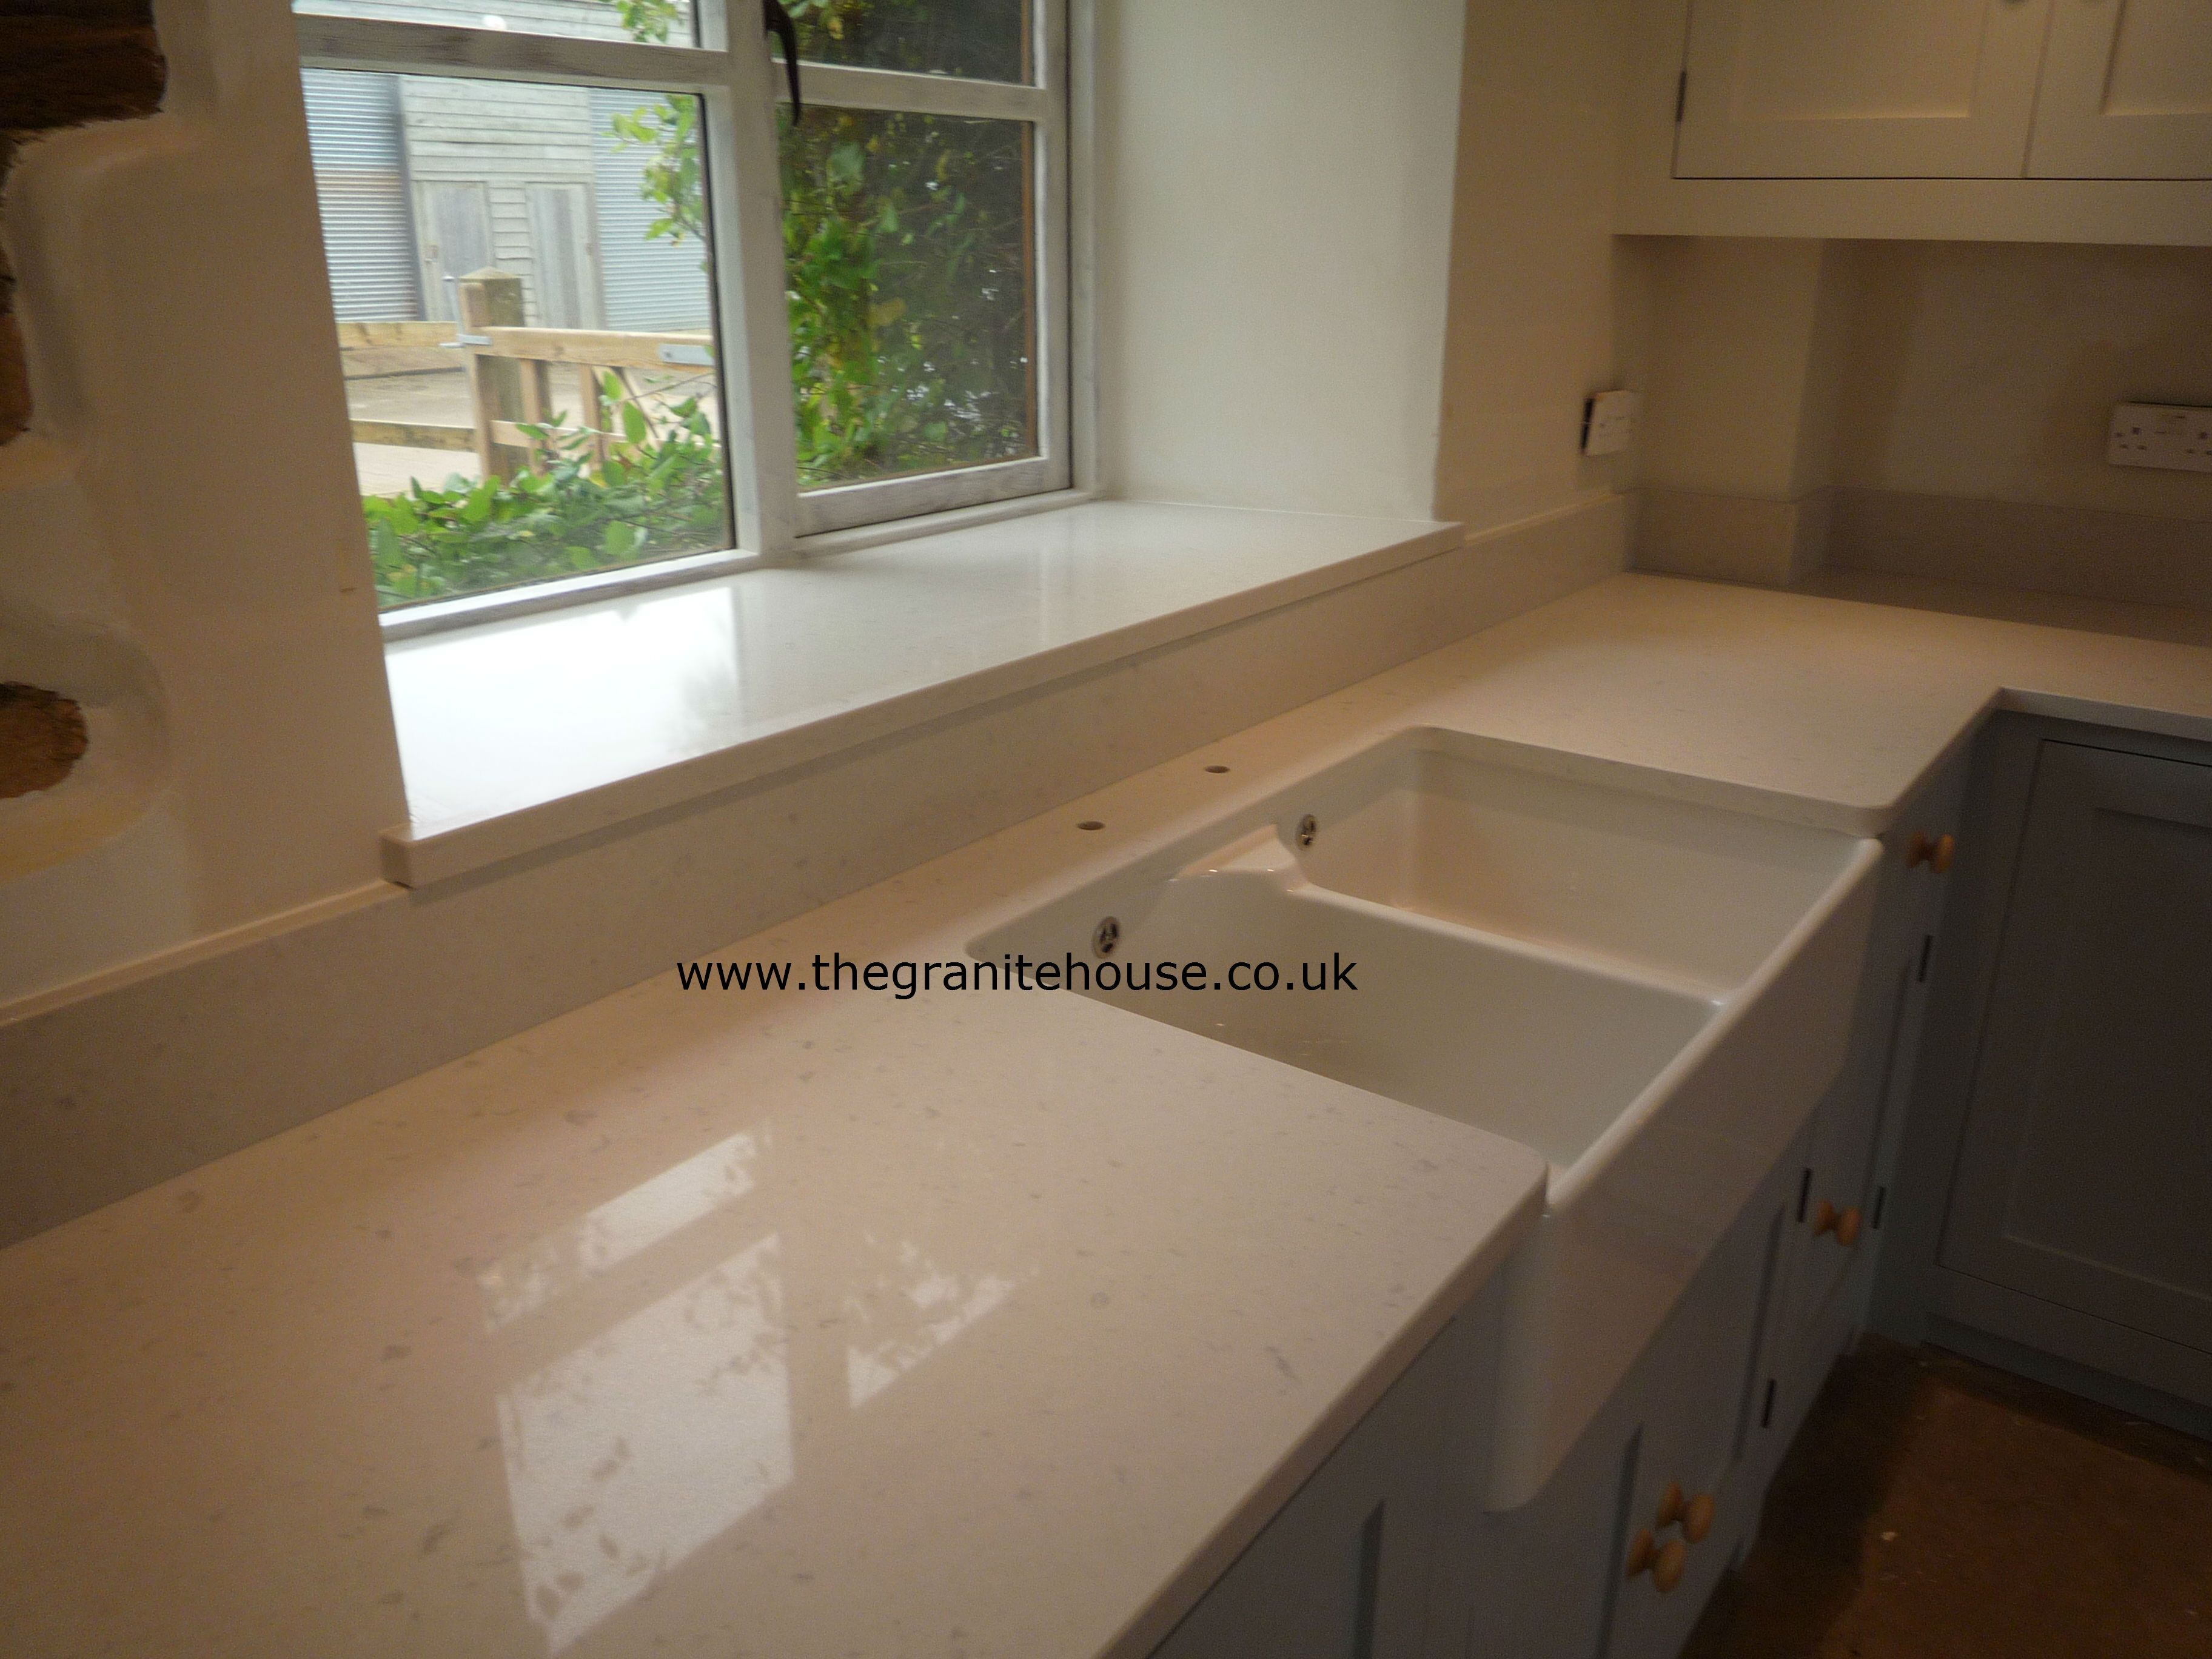 Caesarstone misty carrara even the kitchen sink pinterest at the granite house we offer a range of granite worktops quartz worktops granite flooring tiles and quartz tiles all at great prices doublecrazyfo Images